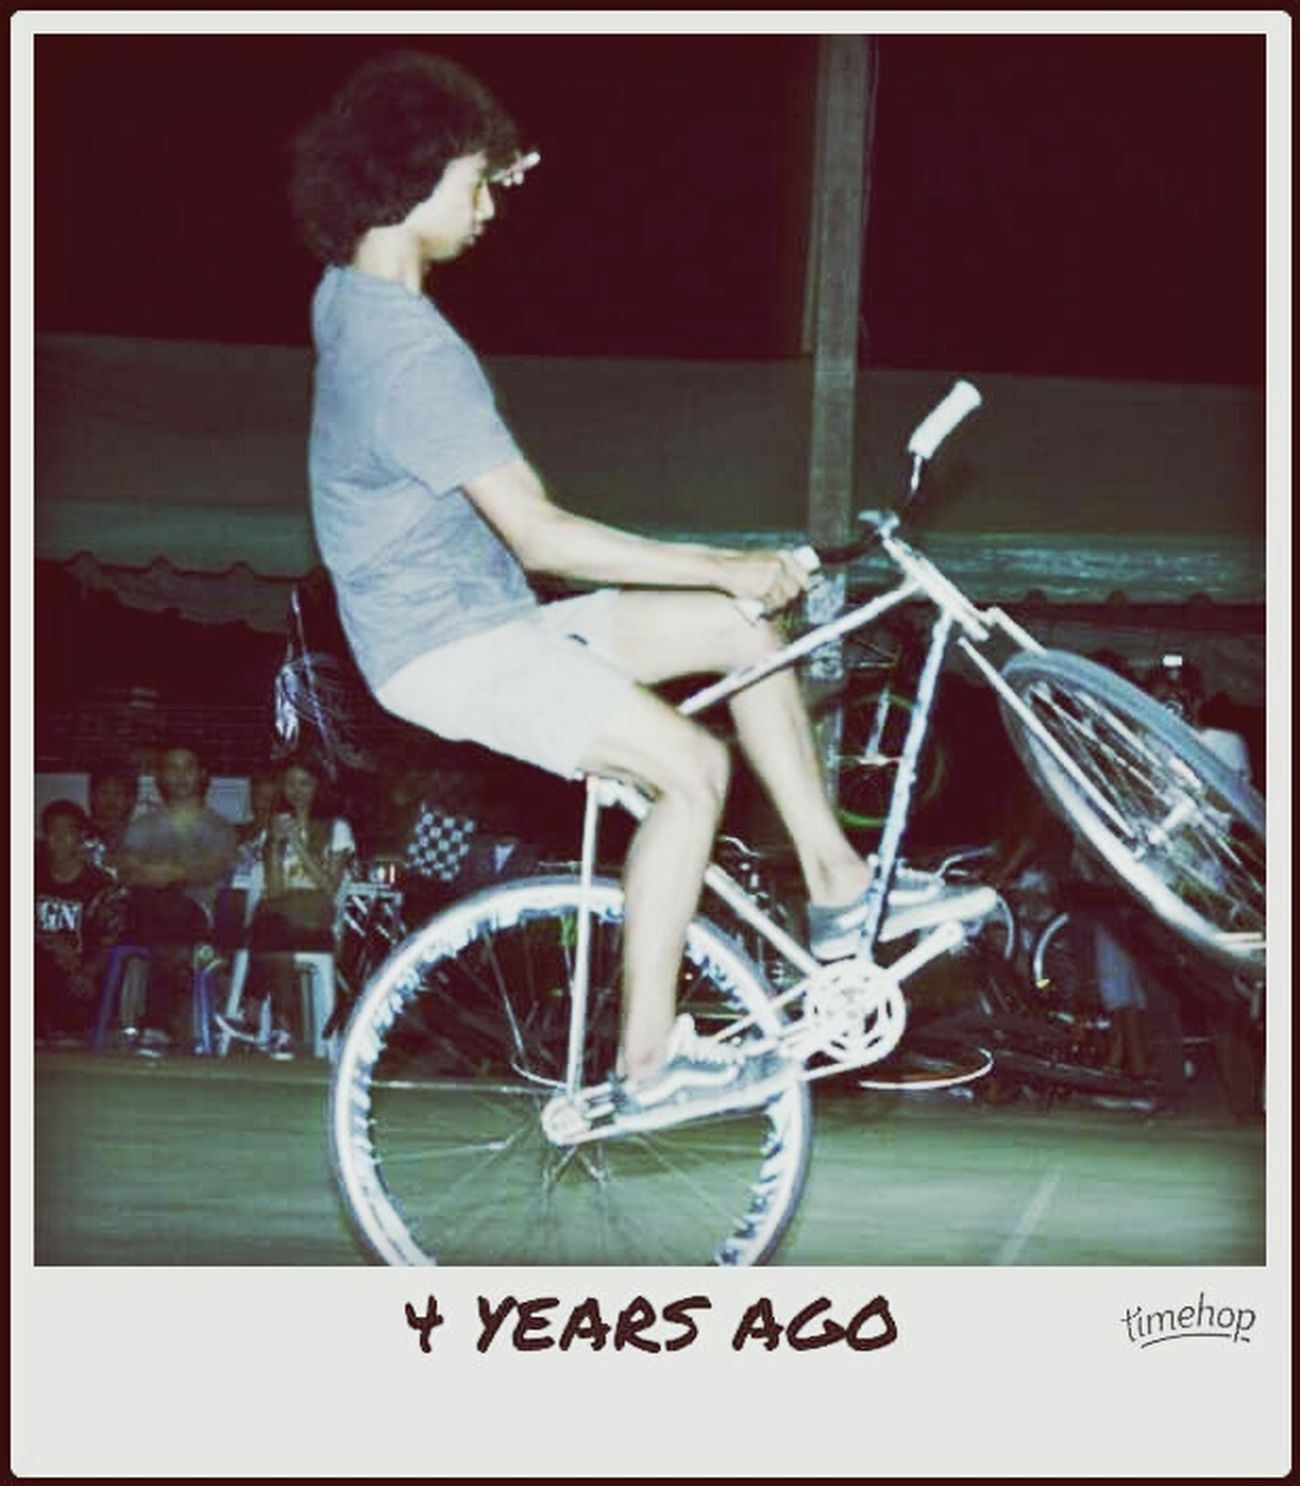 Thailand Fixedgear Old 4YearsAgo Win Bike Barbike Ride